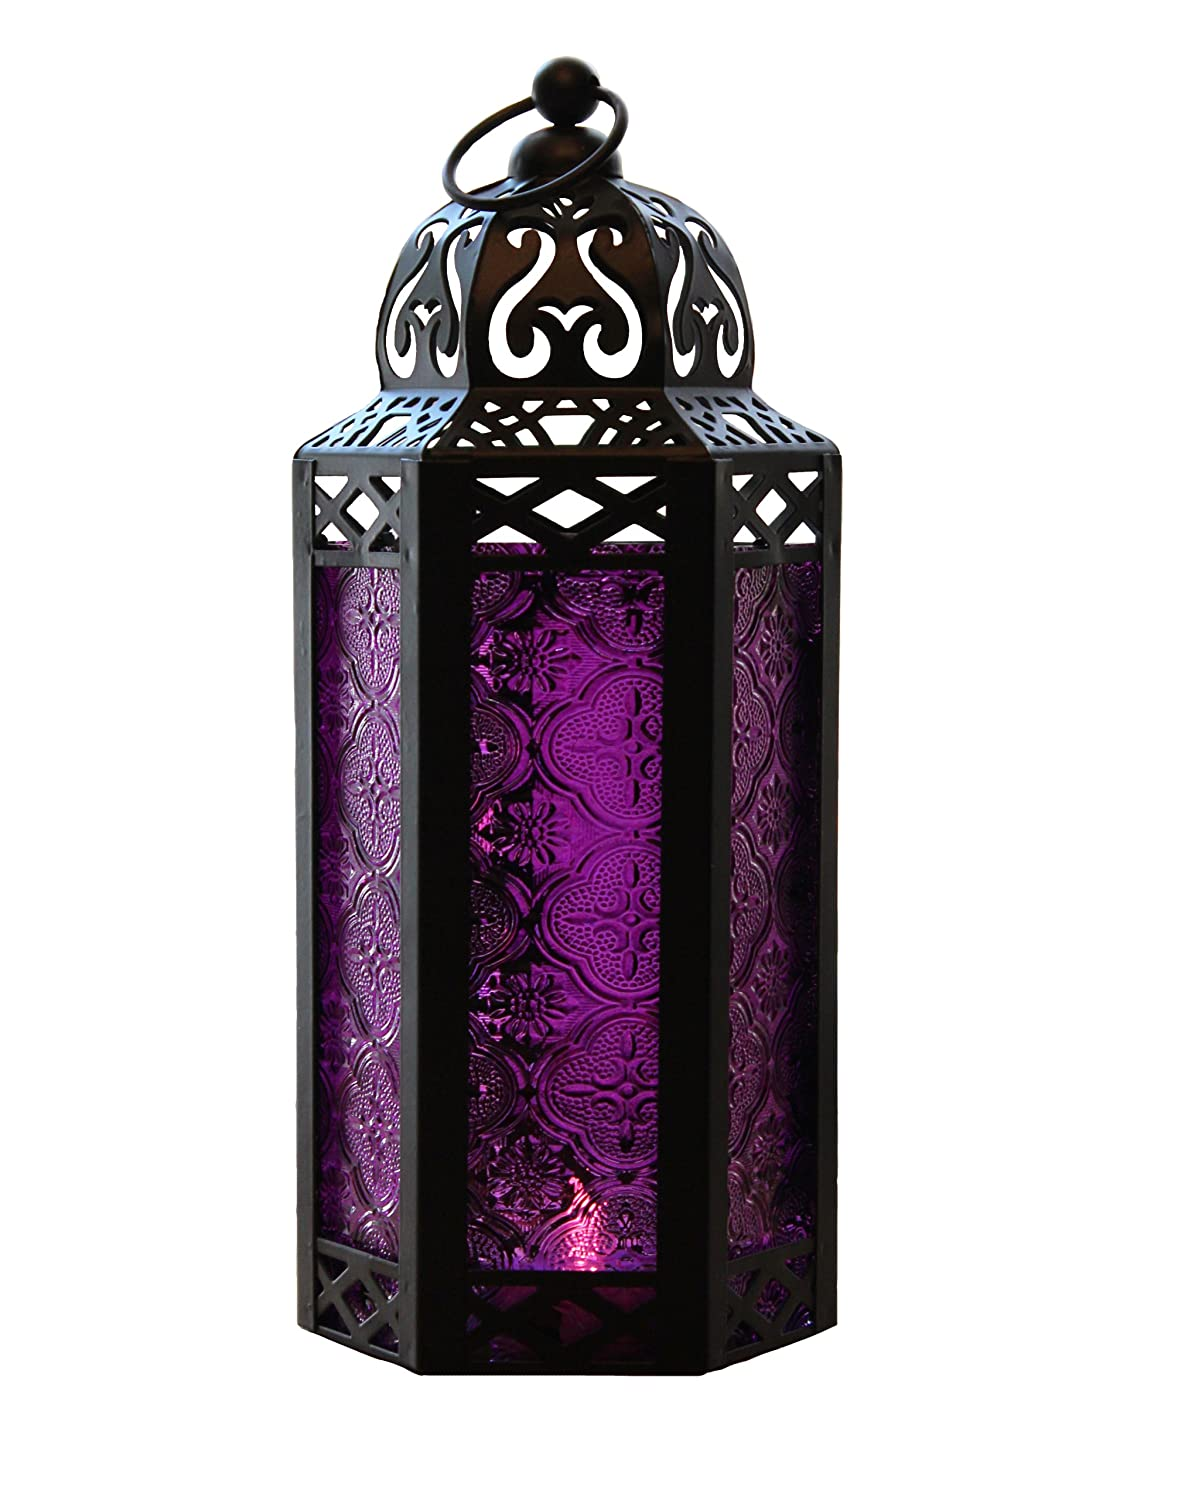 Amazon.com: Purple Glass Moroccan Style Candle Lantern - Great for ...